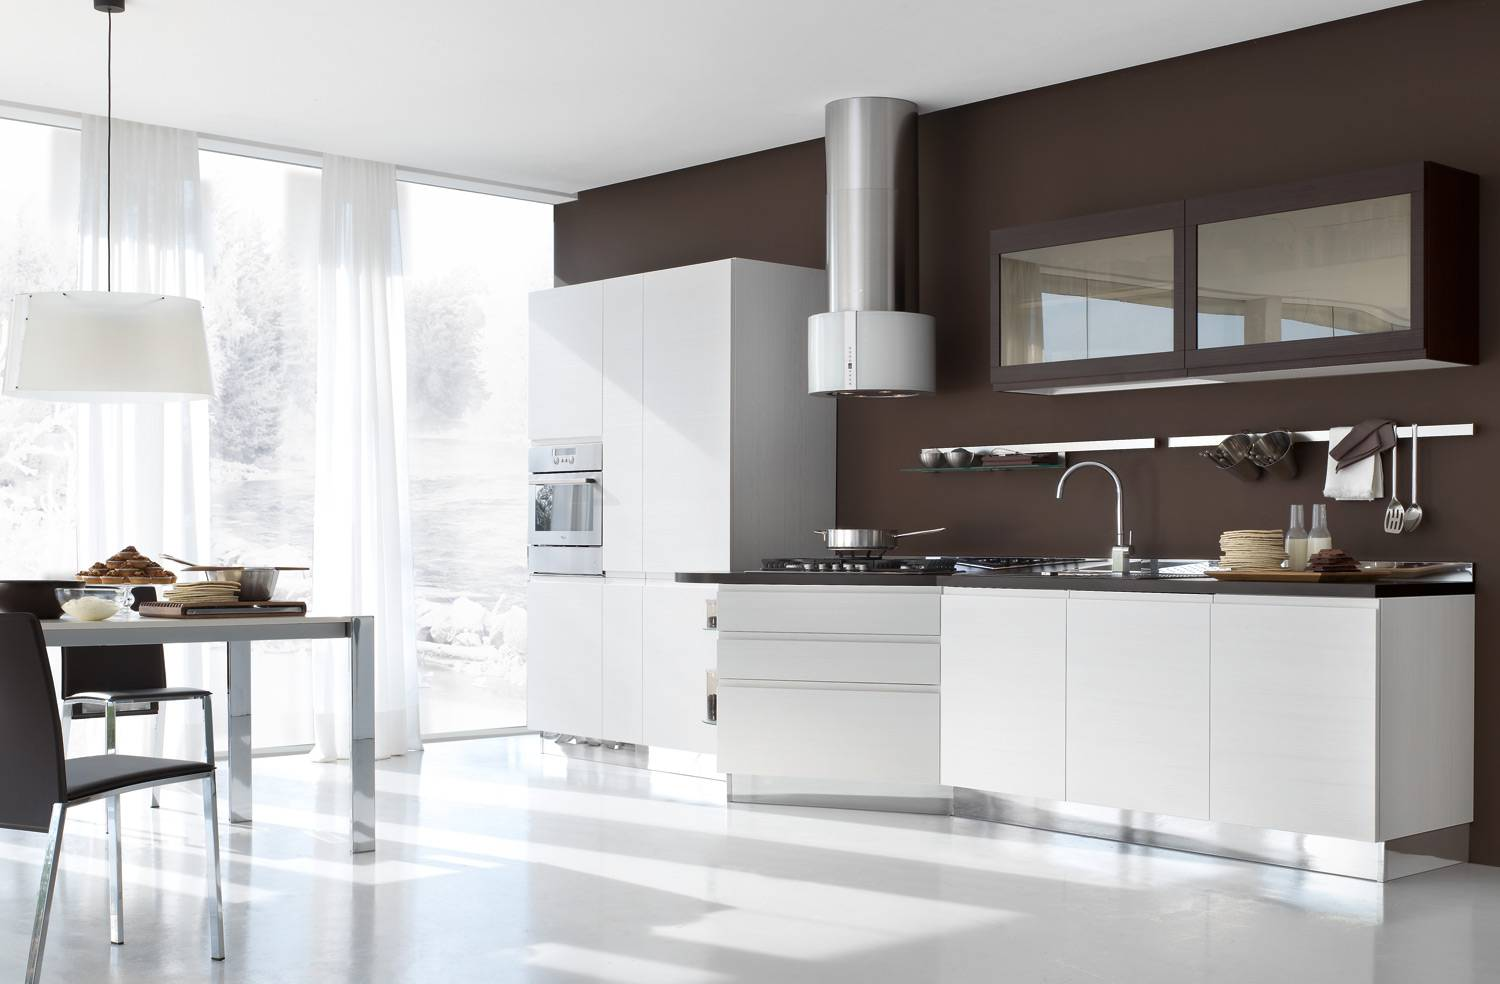 Straight Line Kitchen Designs - Home & Furniture Design ...